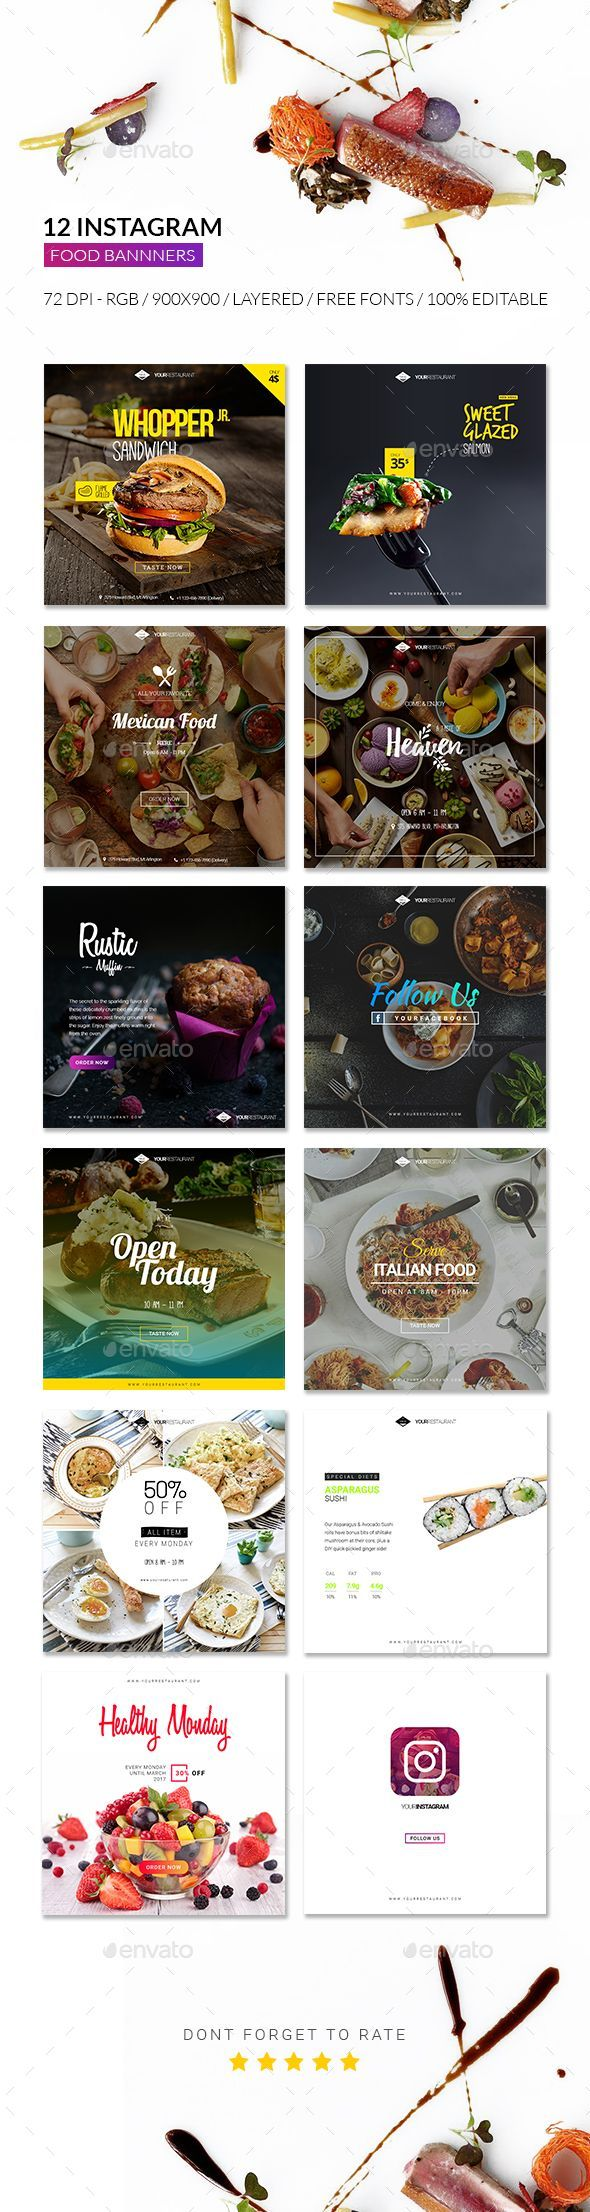 Food Instagram Promotional Design Template - Banners & Ads Web Elements Design Template PSD. Download here: https://graphicriver.net/item/food-instagram-promotional-template/19393488?ref=yinkira